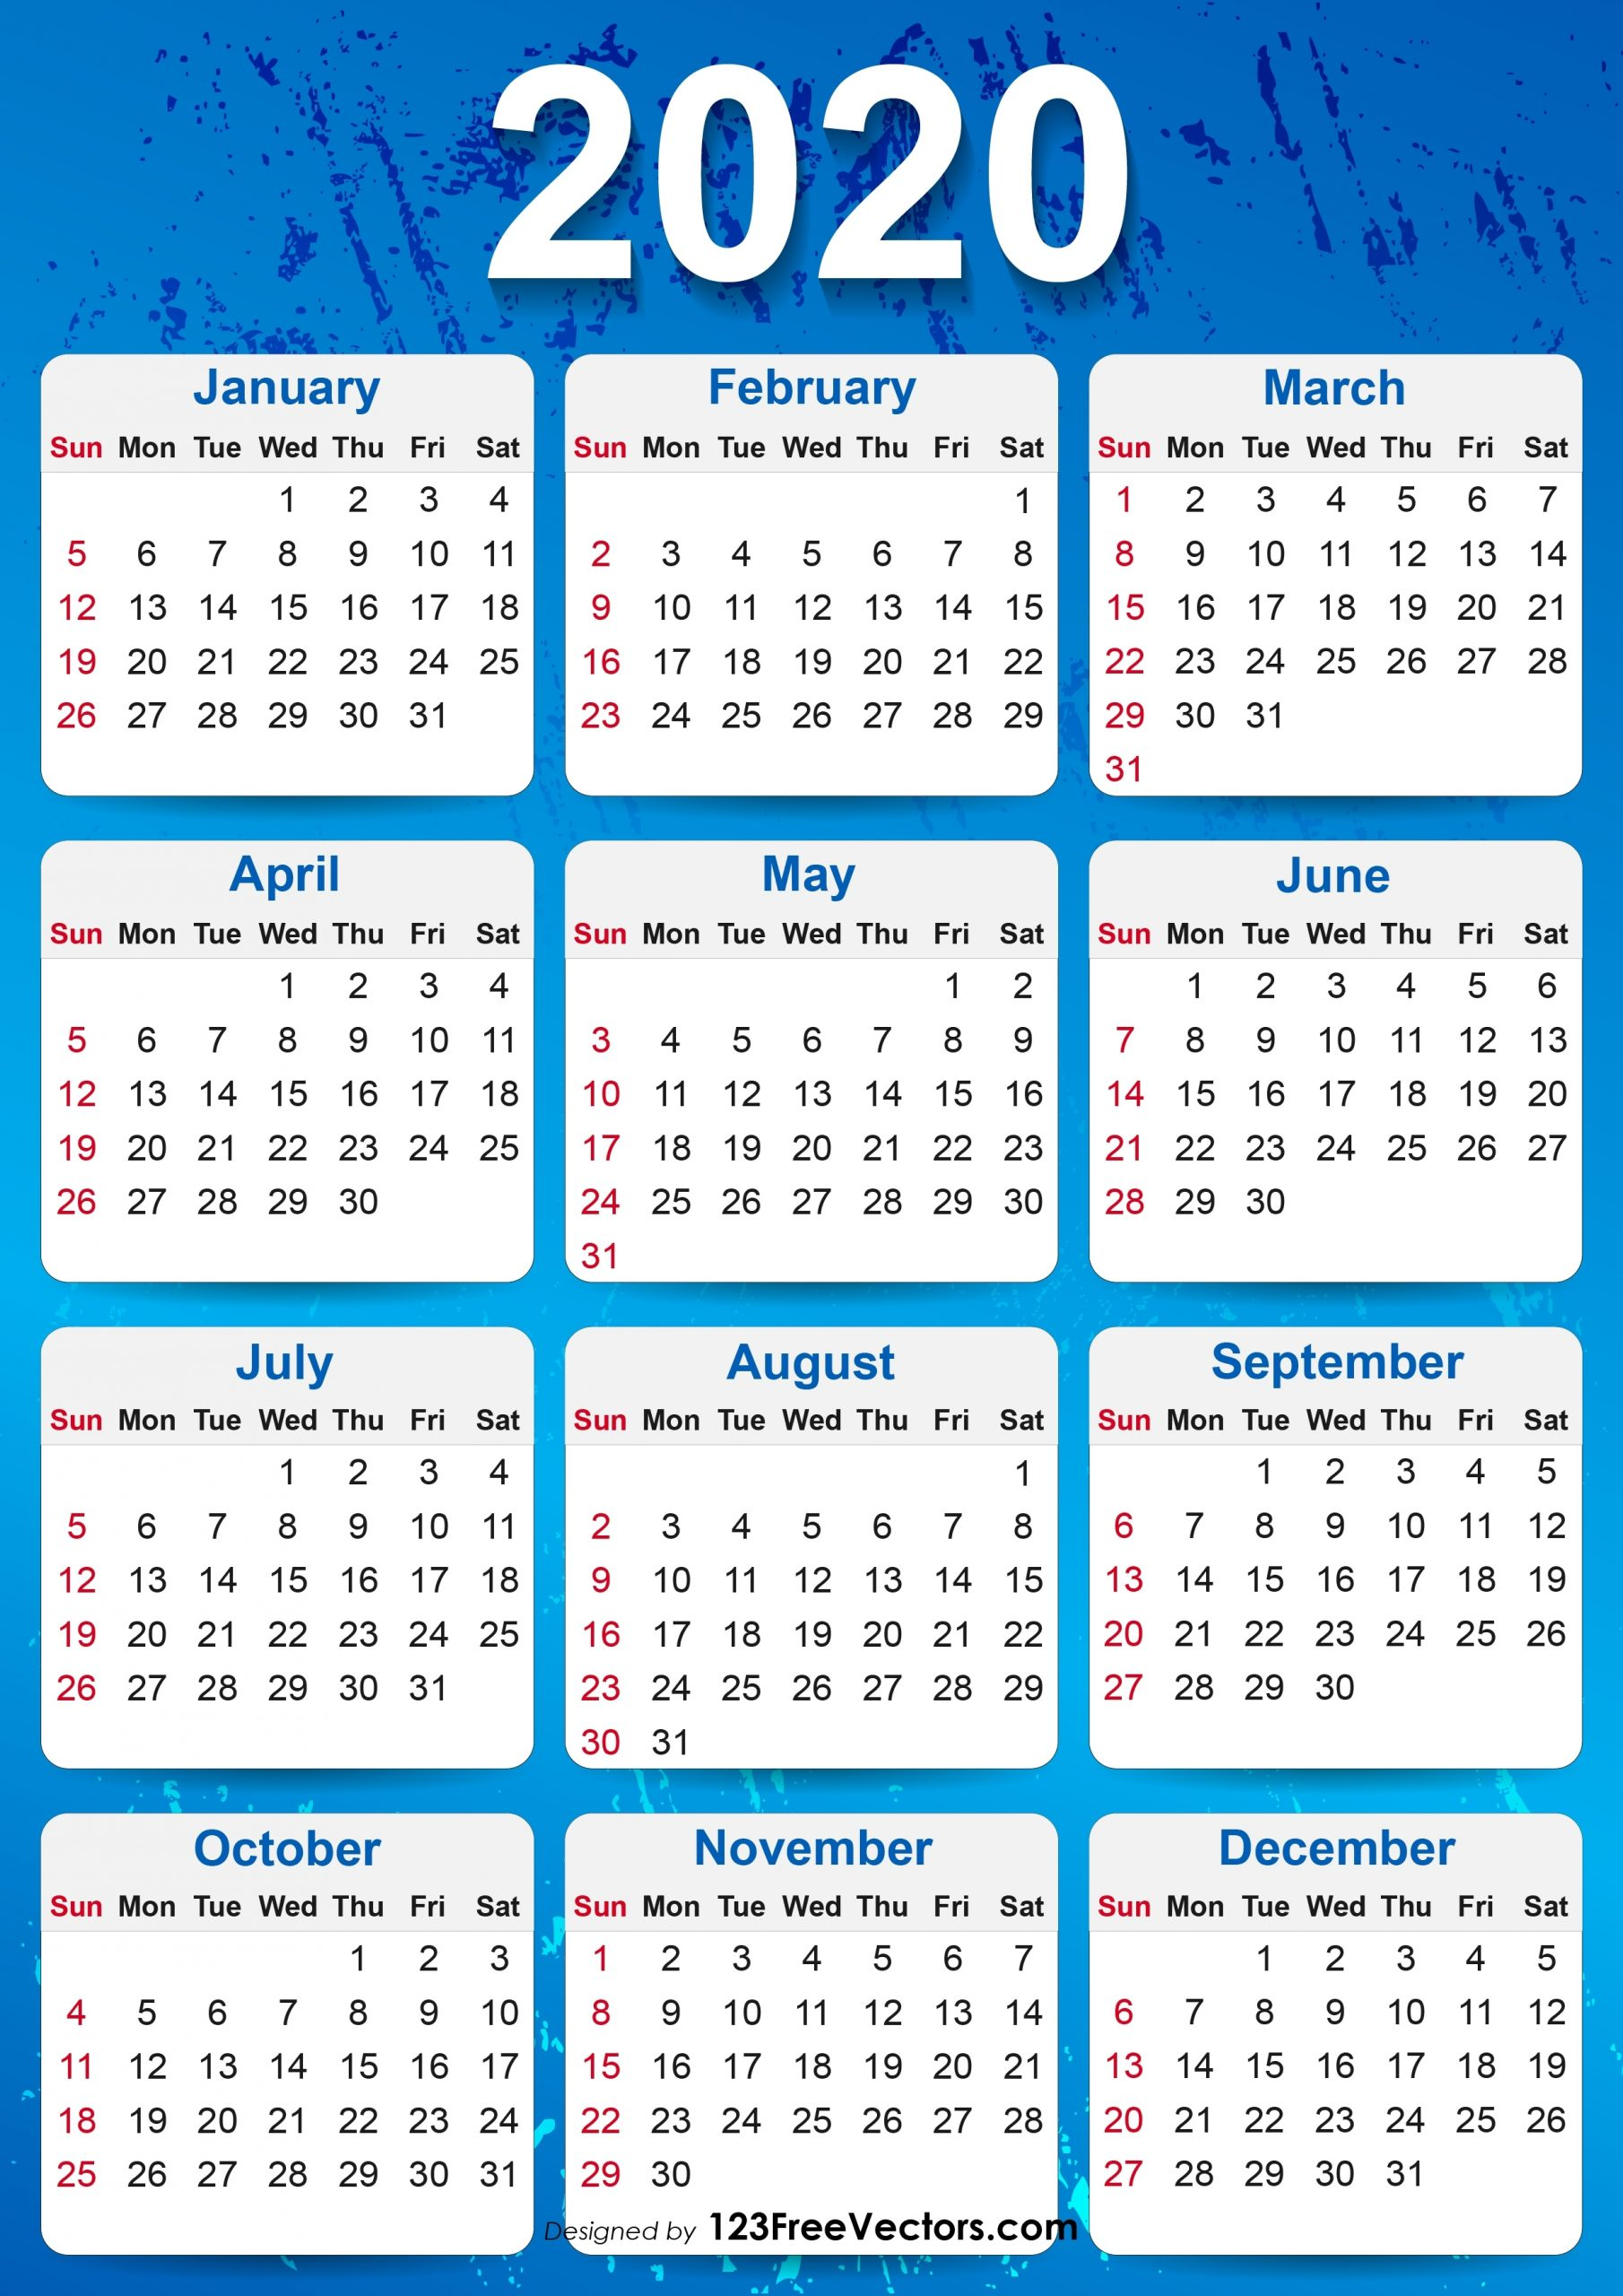 2020 Yearly Calendar Download Sunday Through Saturday | Calendar Template Printable Monthly Yearly